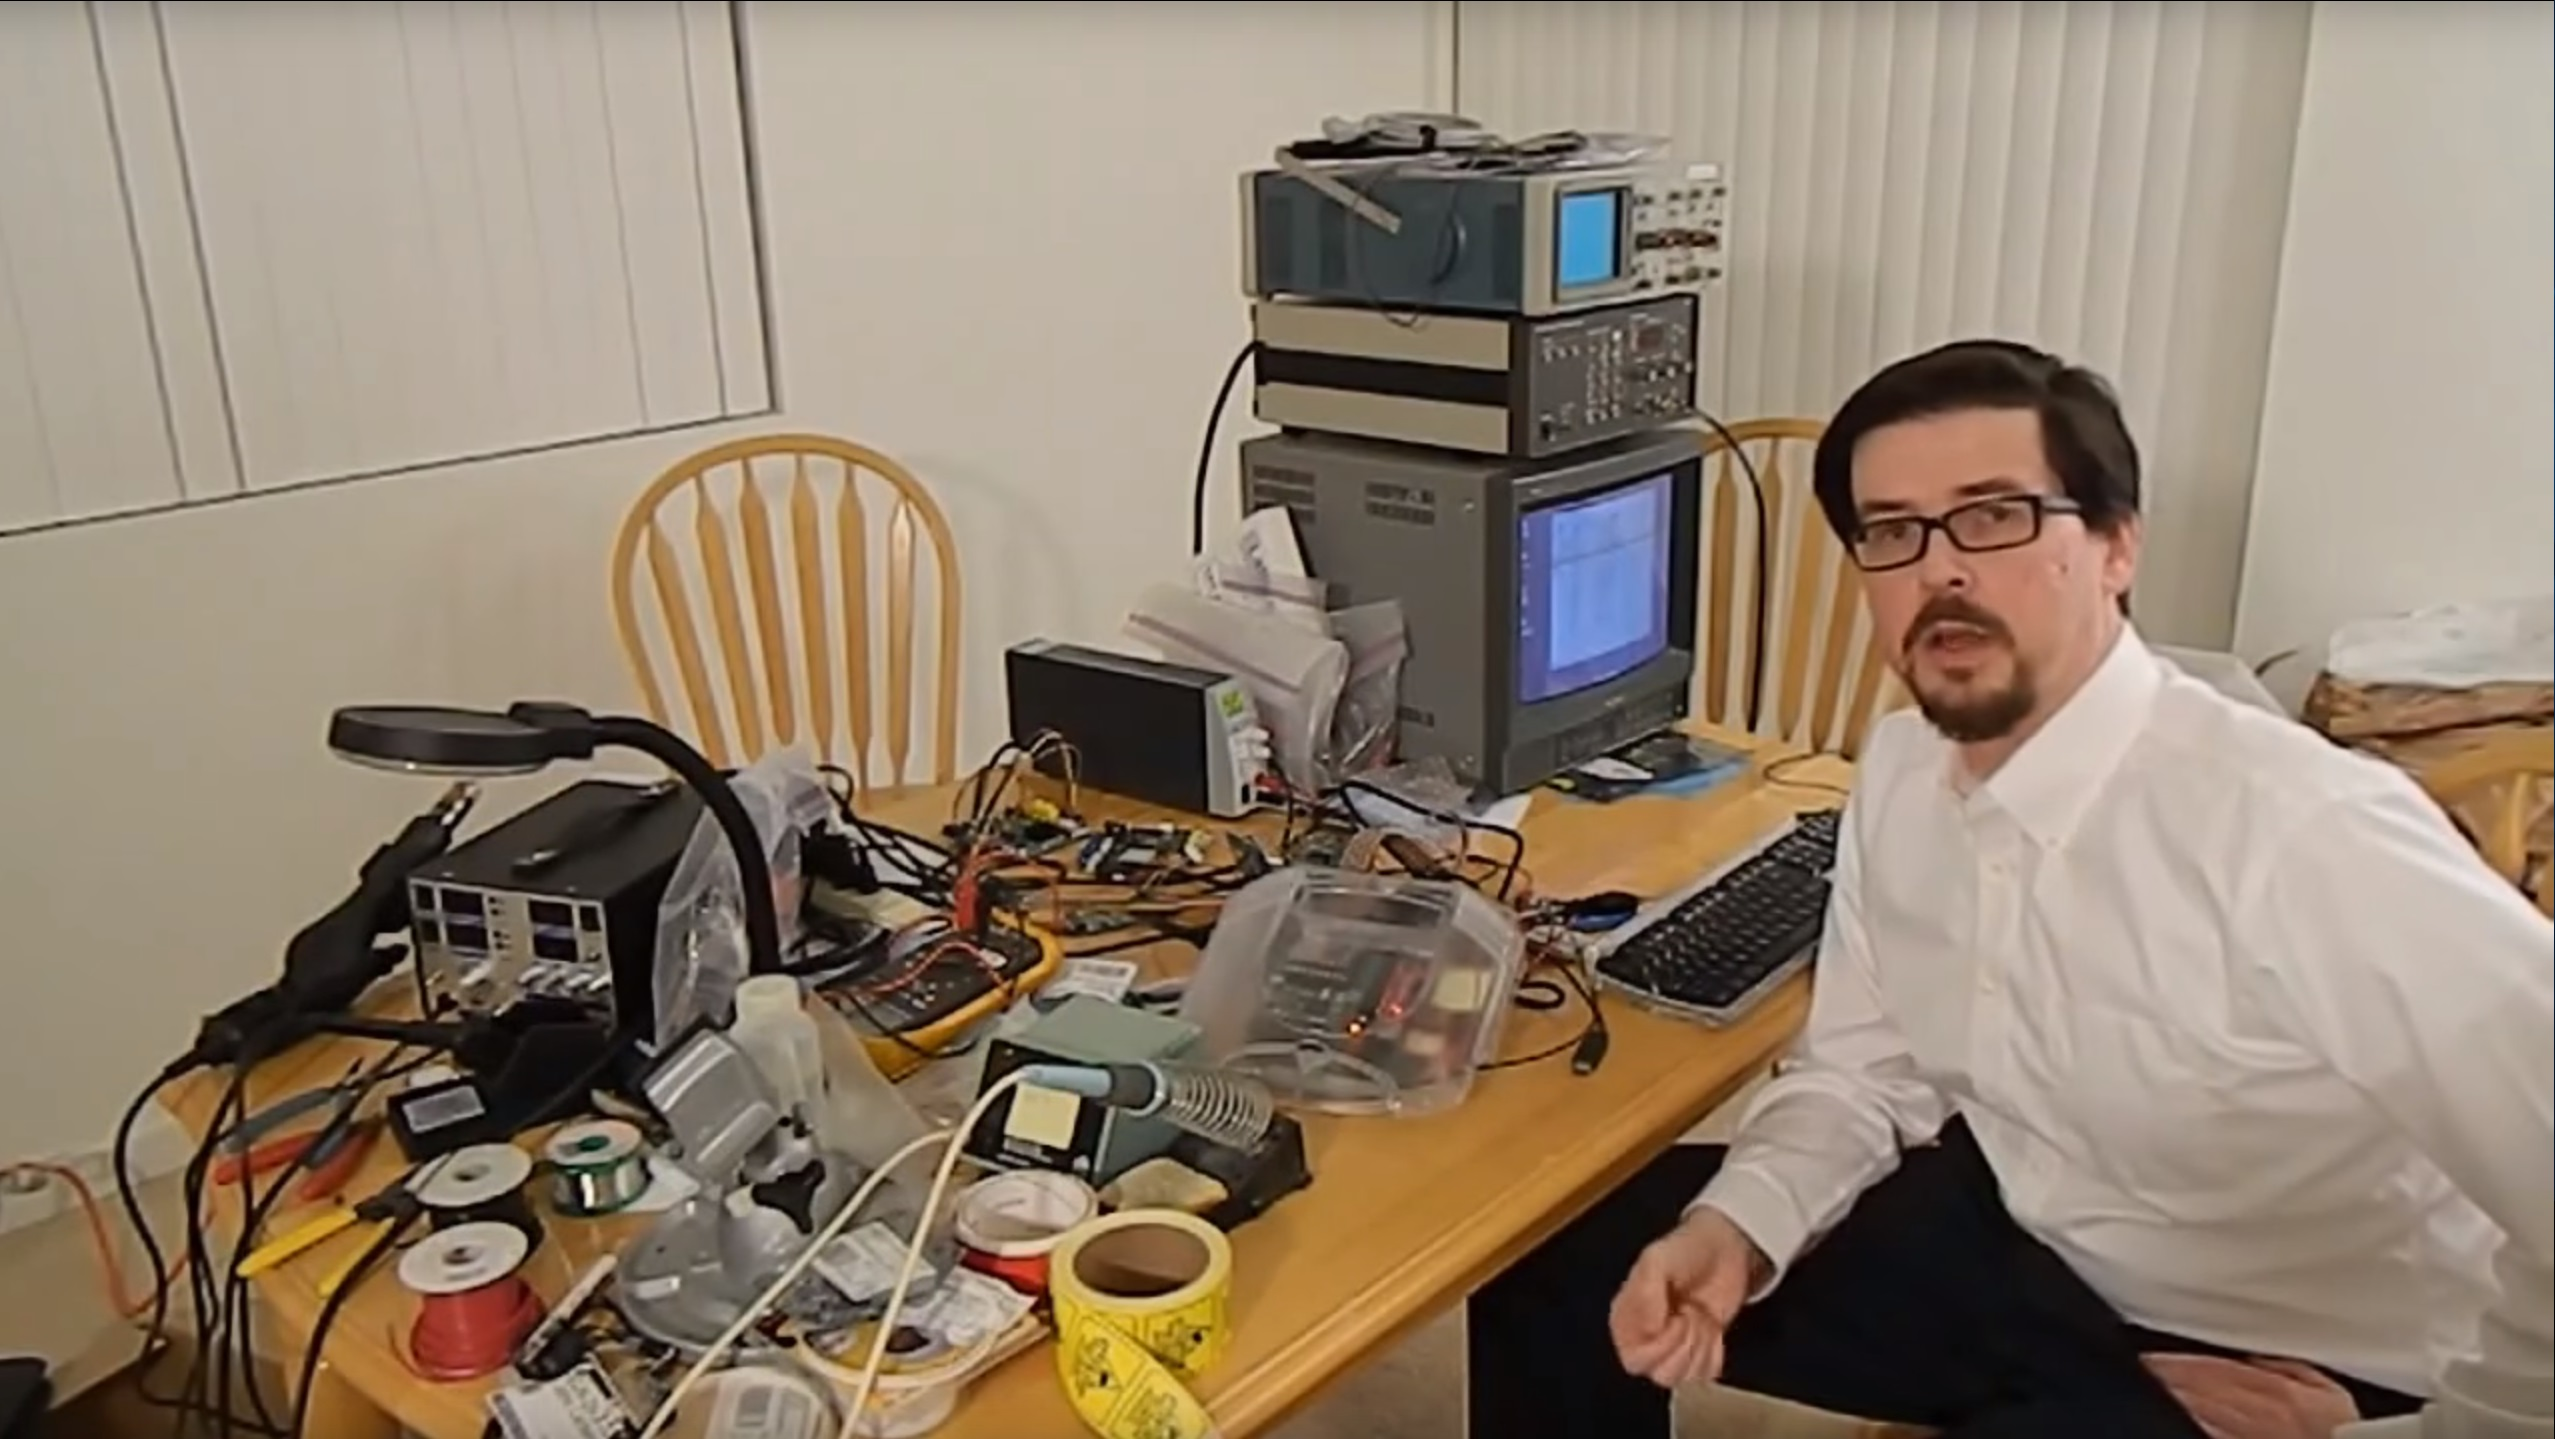 Still from a video showing a barely functional Retro VGS prototype managing to draw power from a wall unit.